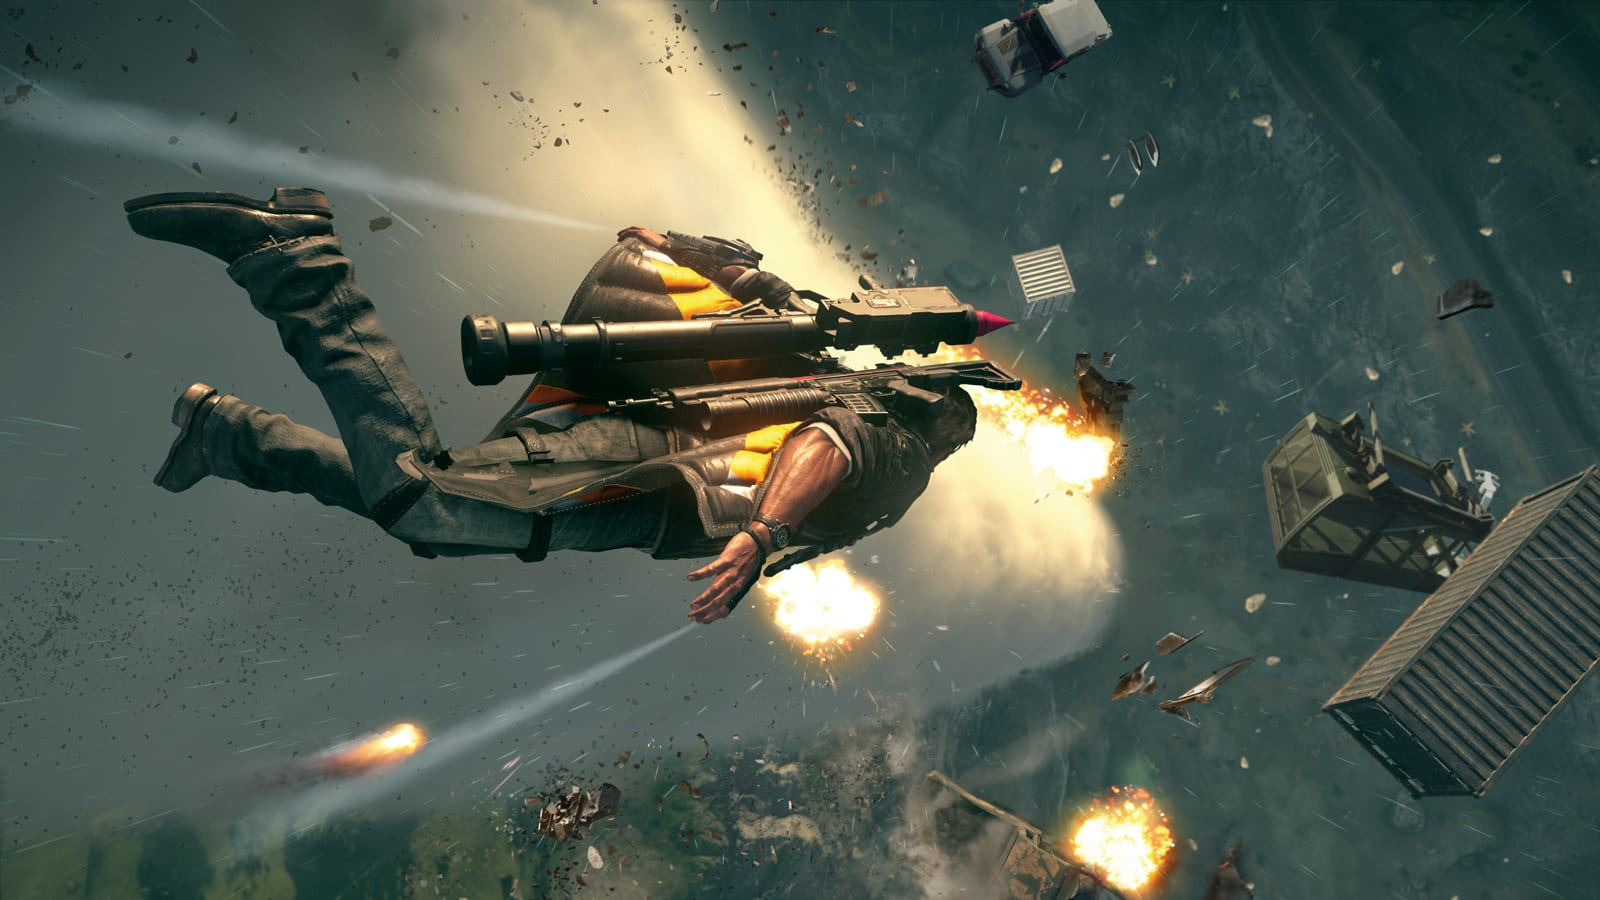 The best weapon in 'Just Cause 4' is Mother Nature